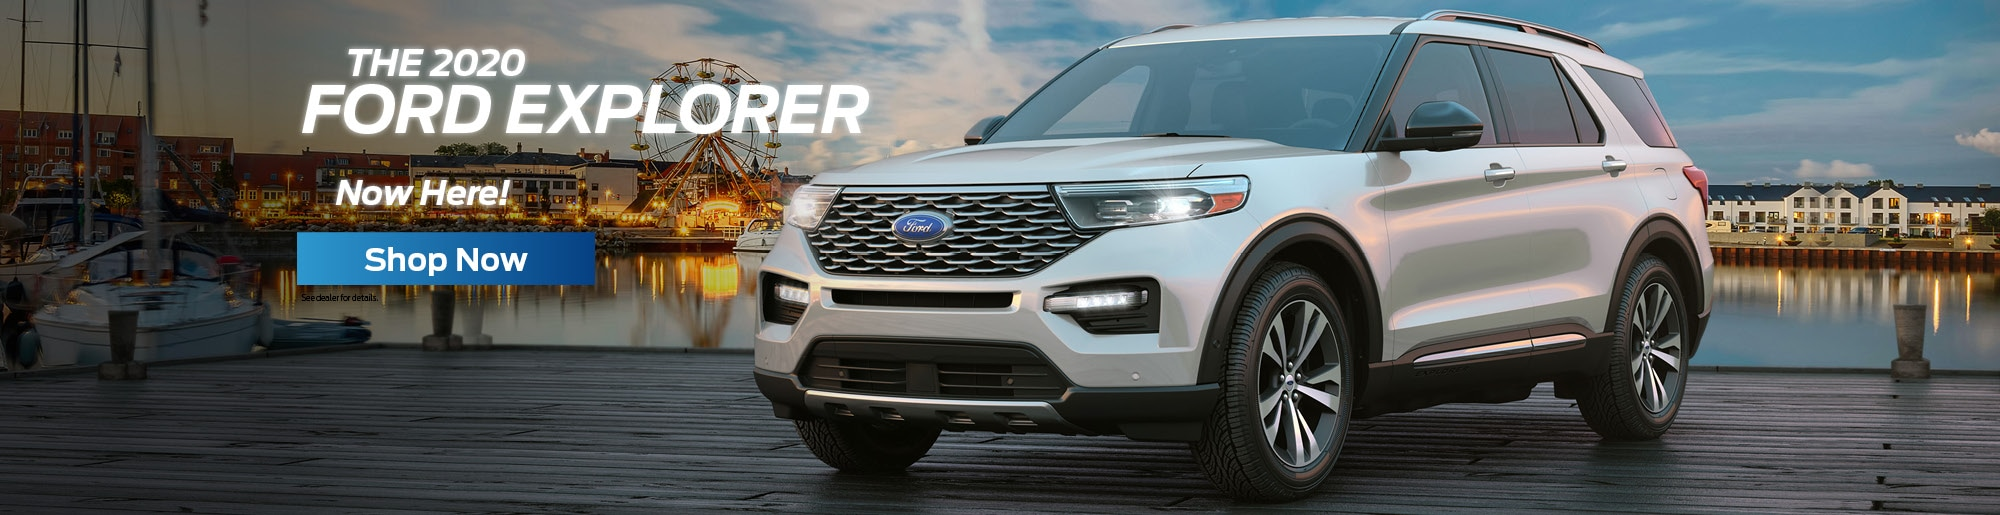 Melbourne Ford Dealer In Melbourne Fl Palm Bay Cocoa Beach >> Paradise Ford Ford Dealership In Cocoa Fl